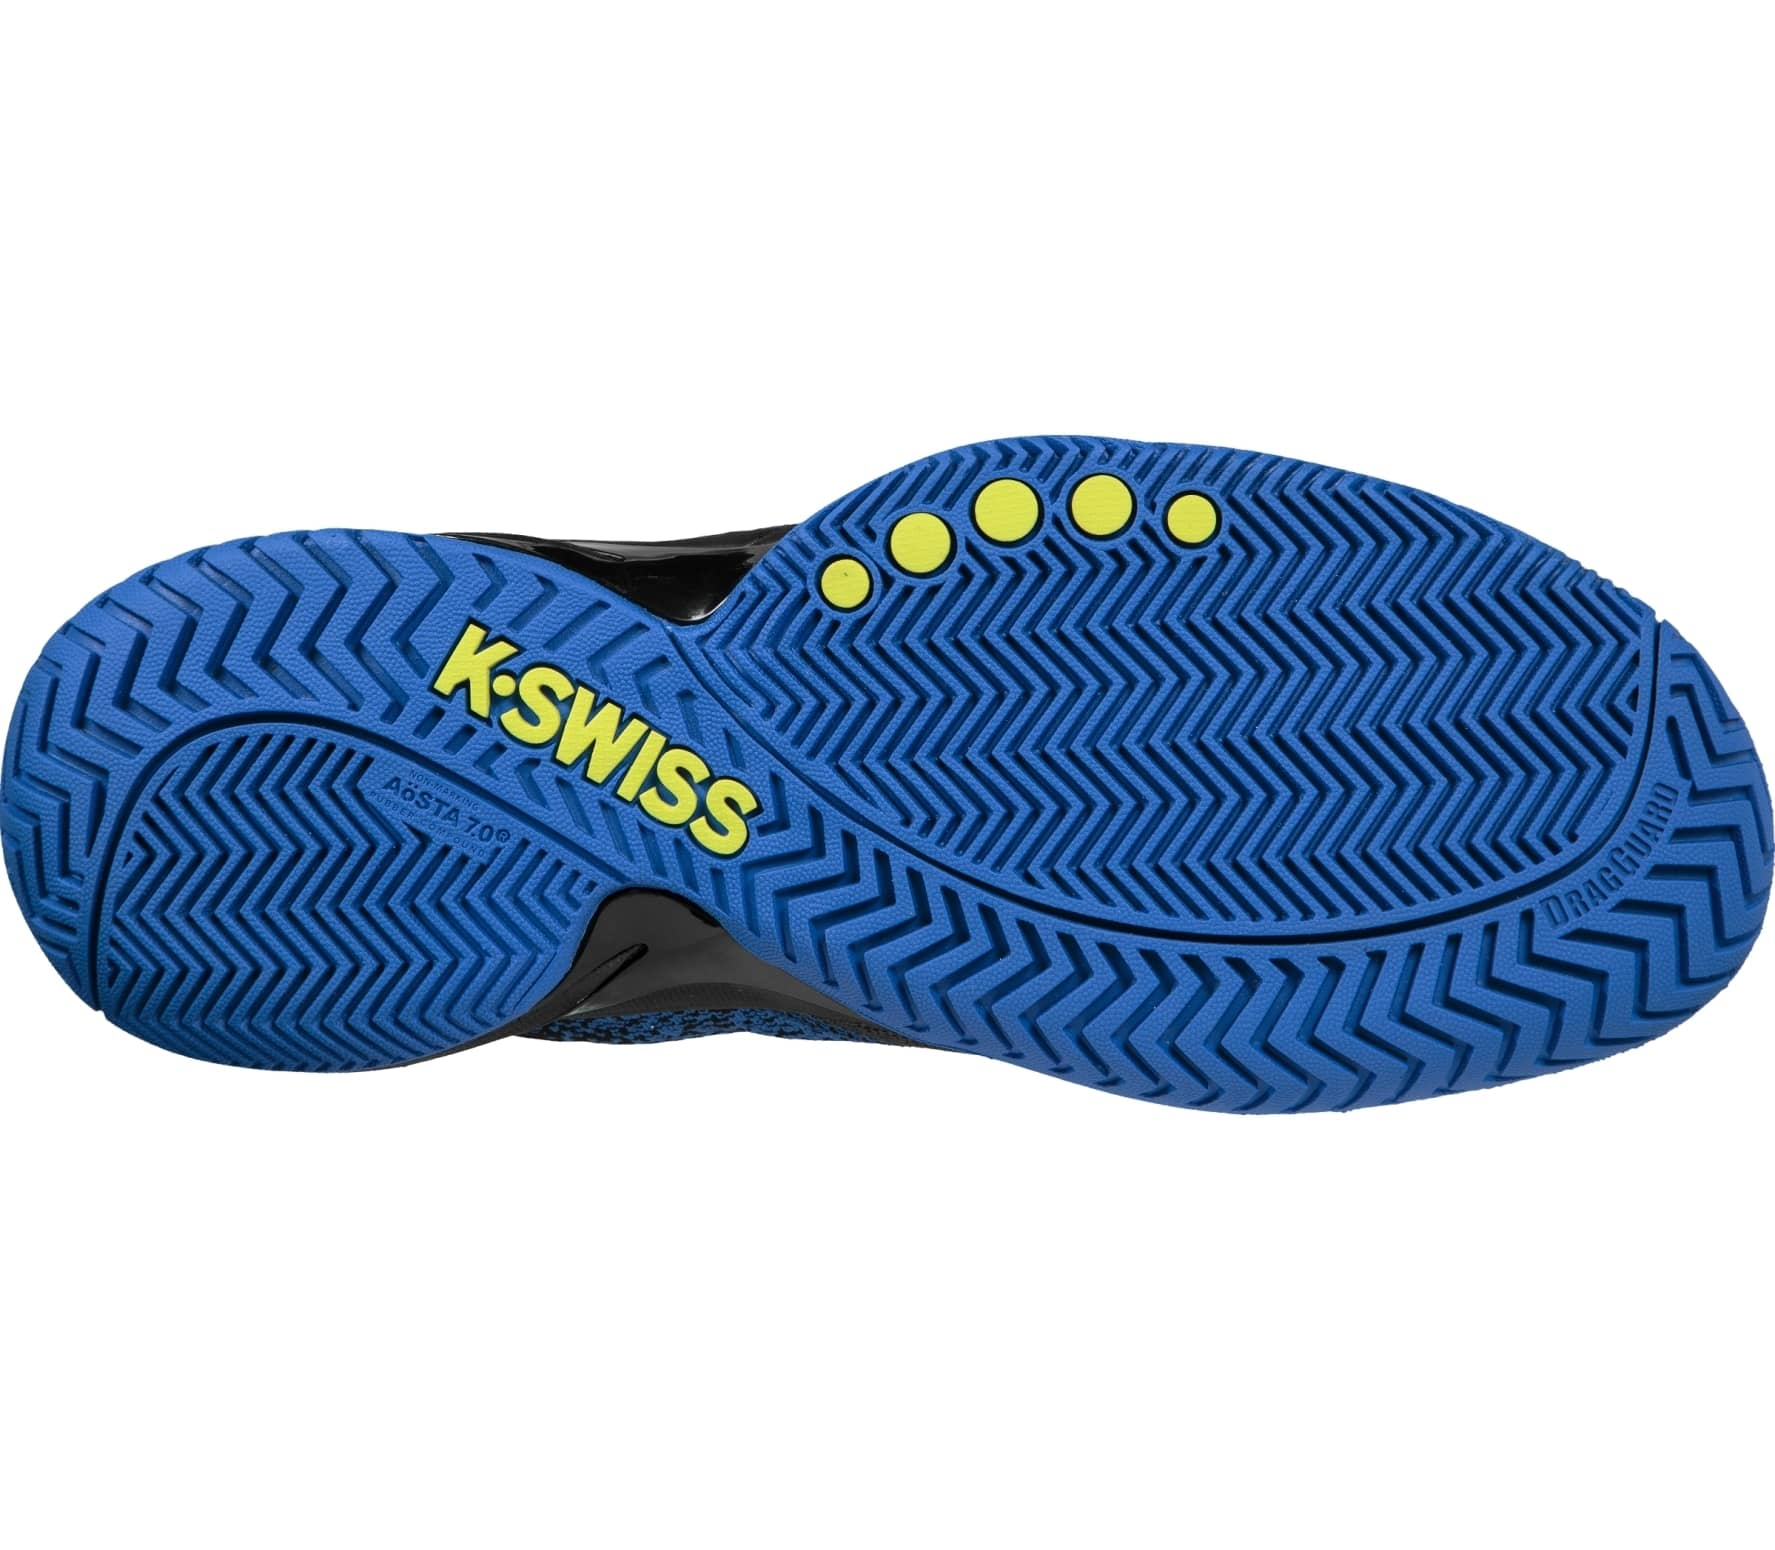 buy online c2e69 900ac K-Swiss - Knitshot men s tennis shoes (black blue)